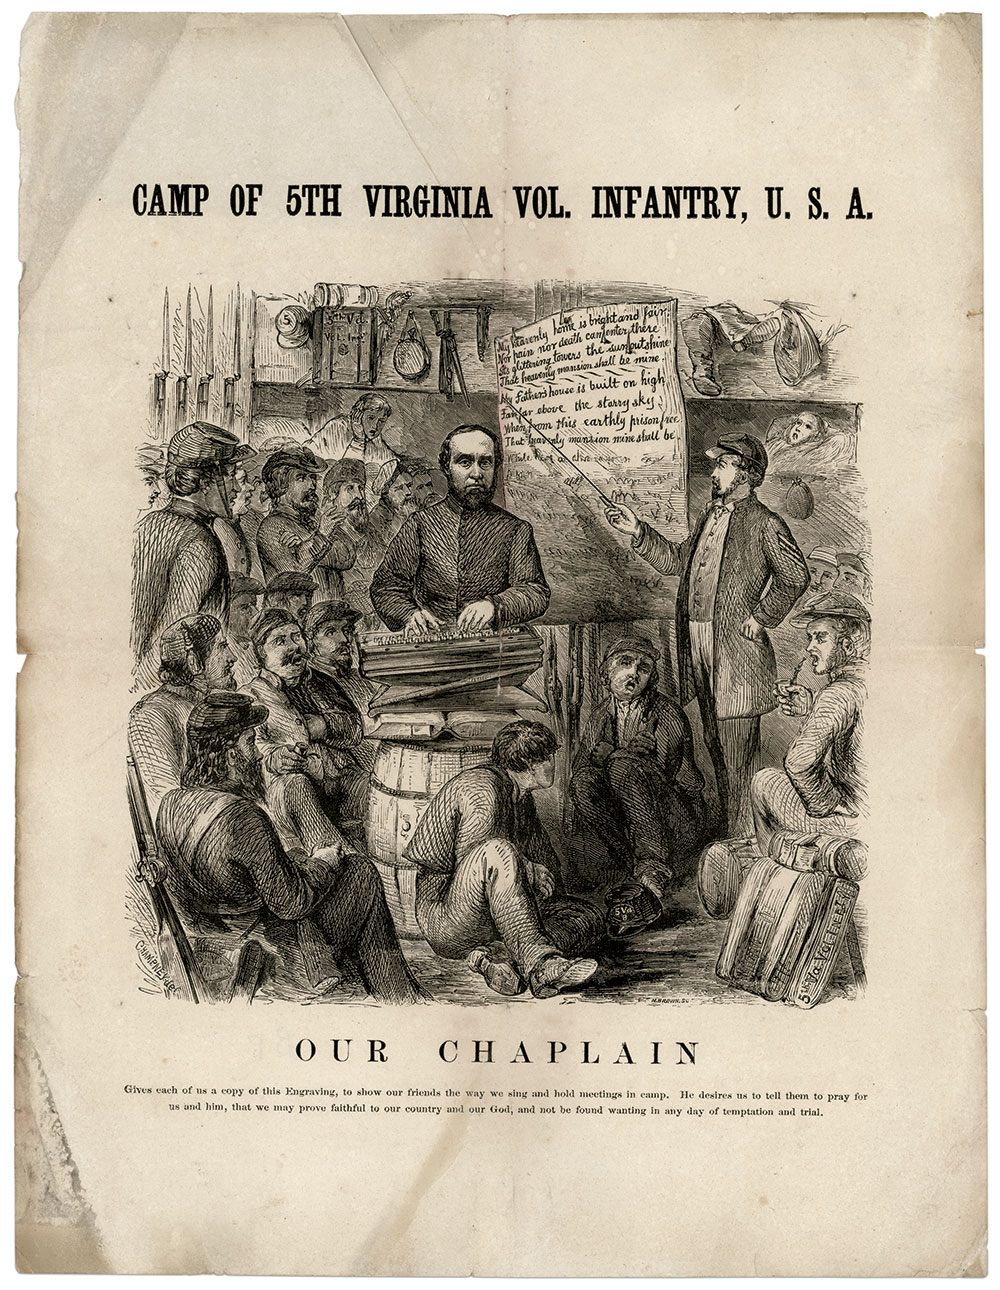 """Left: Camp of 5th Virginia Vol. Infantry, U.S.A.: Printed and distributed to members of the regiment, the engraving is dated on the back Kanawha Falls, W. Va., 1864. The 5th camped there from November 1863 to April 1864. The lyrics on the poster, """"The Heavenly Home,"""" were written by William Hunter, D.D. (1811-1877)."""